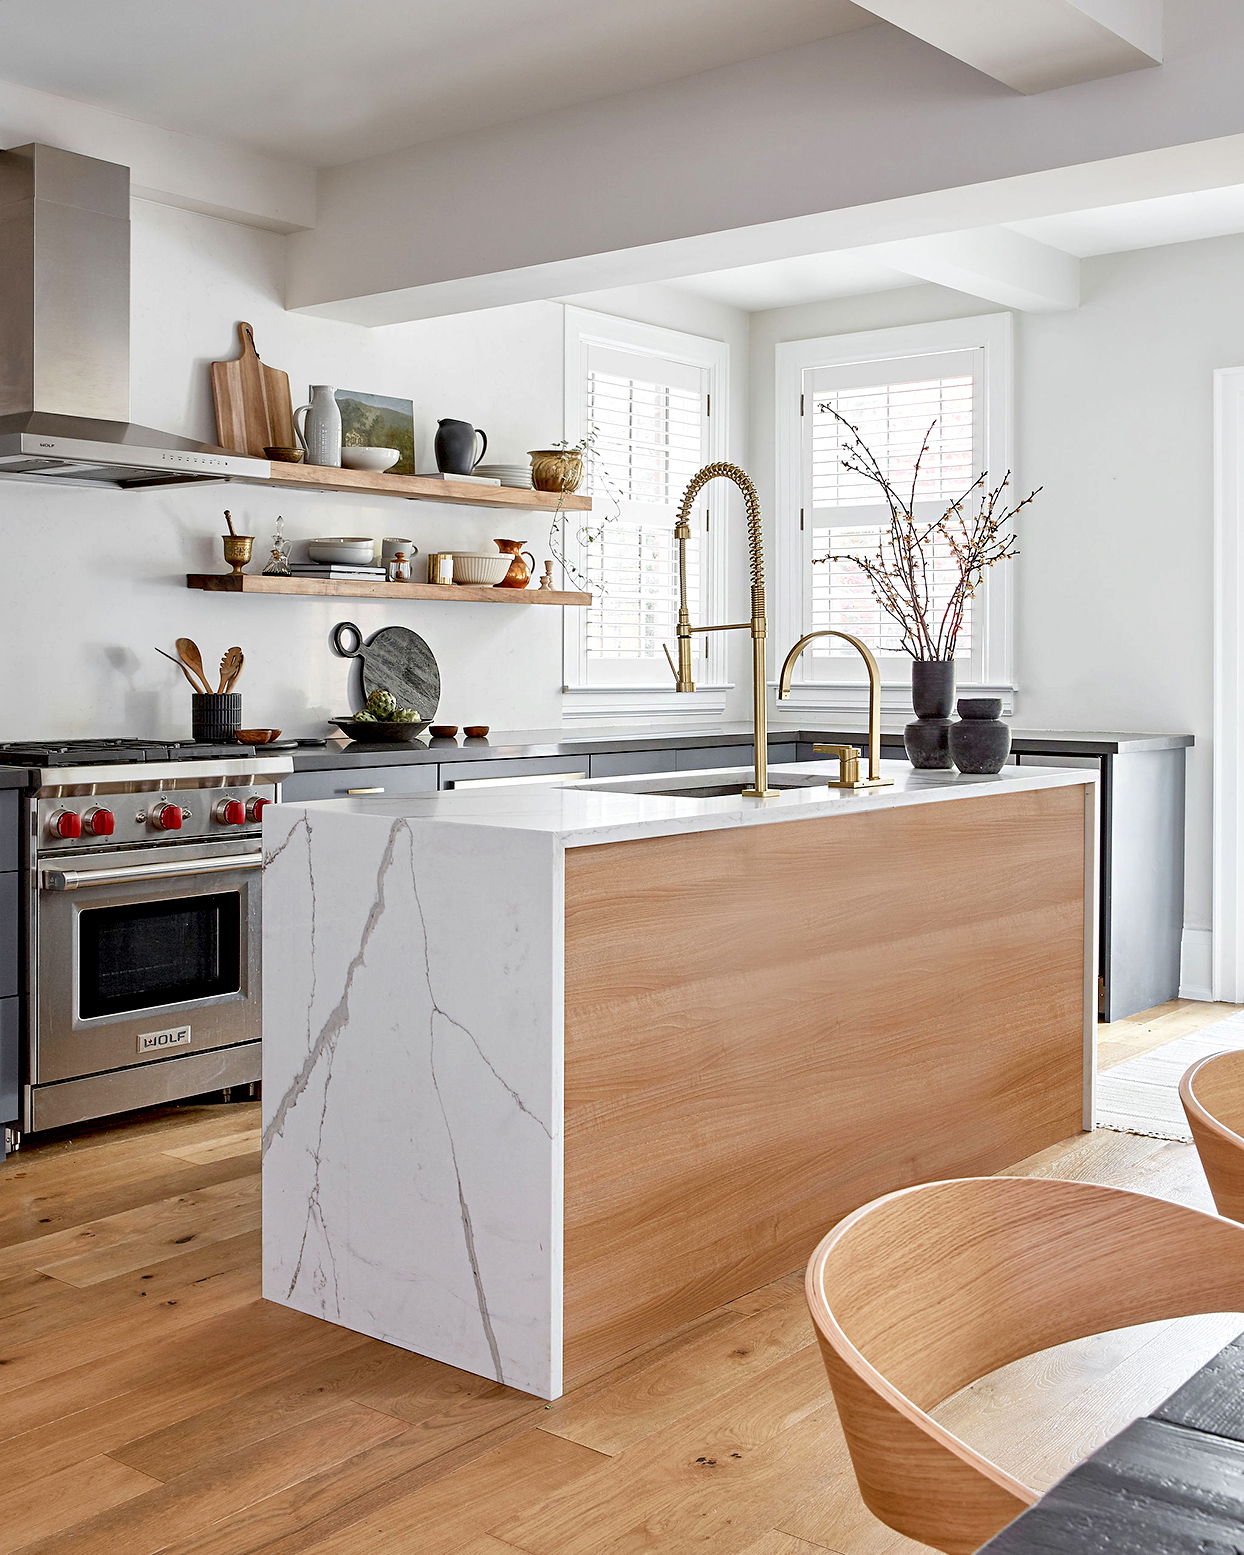 Kitchen with wood and marble theme